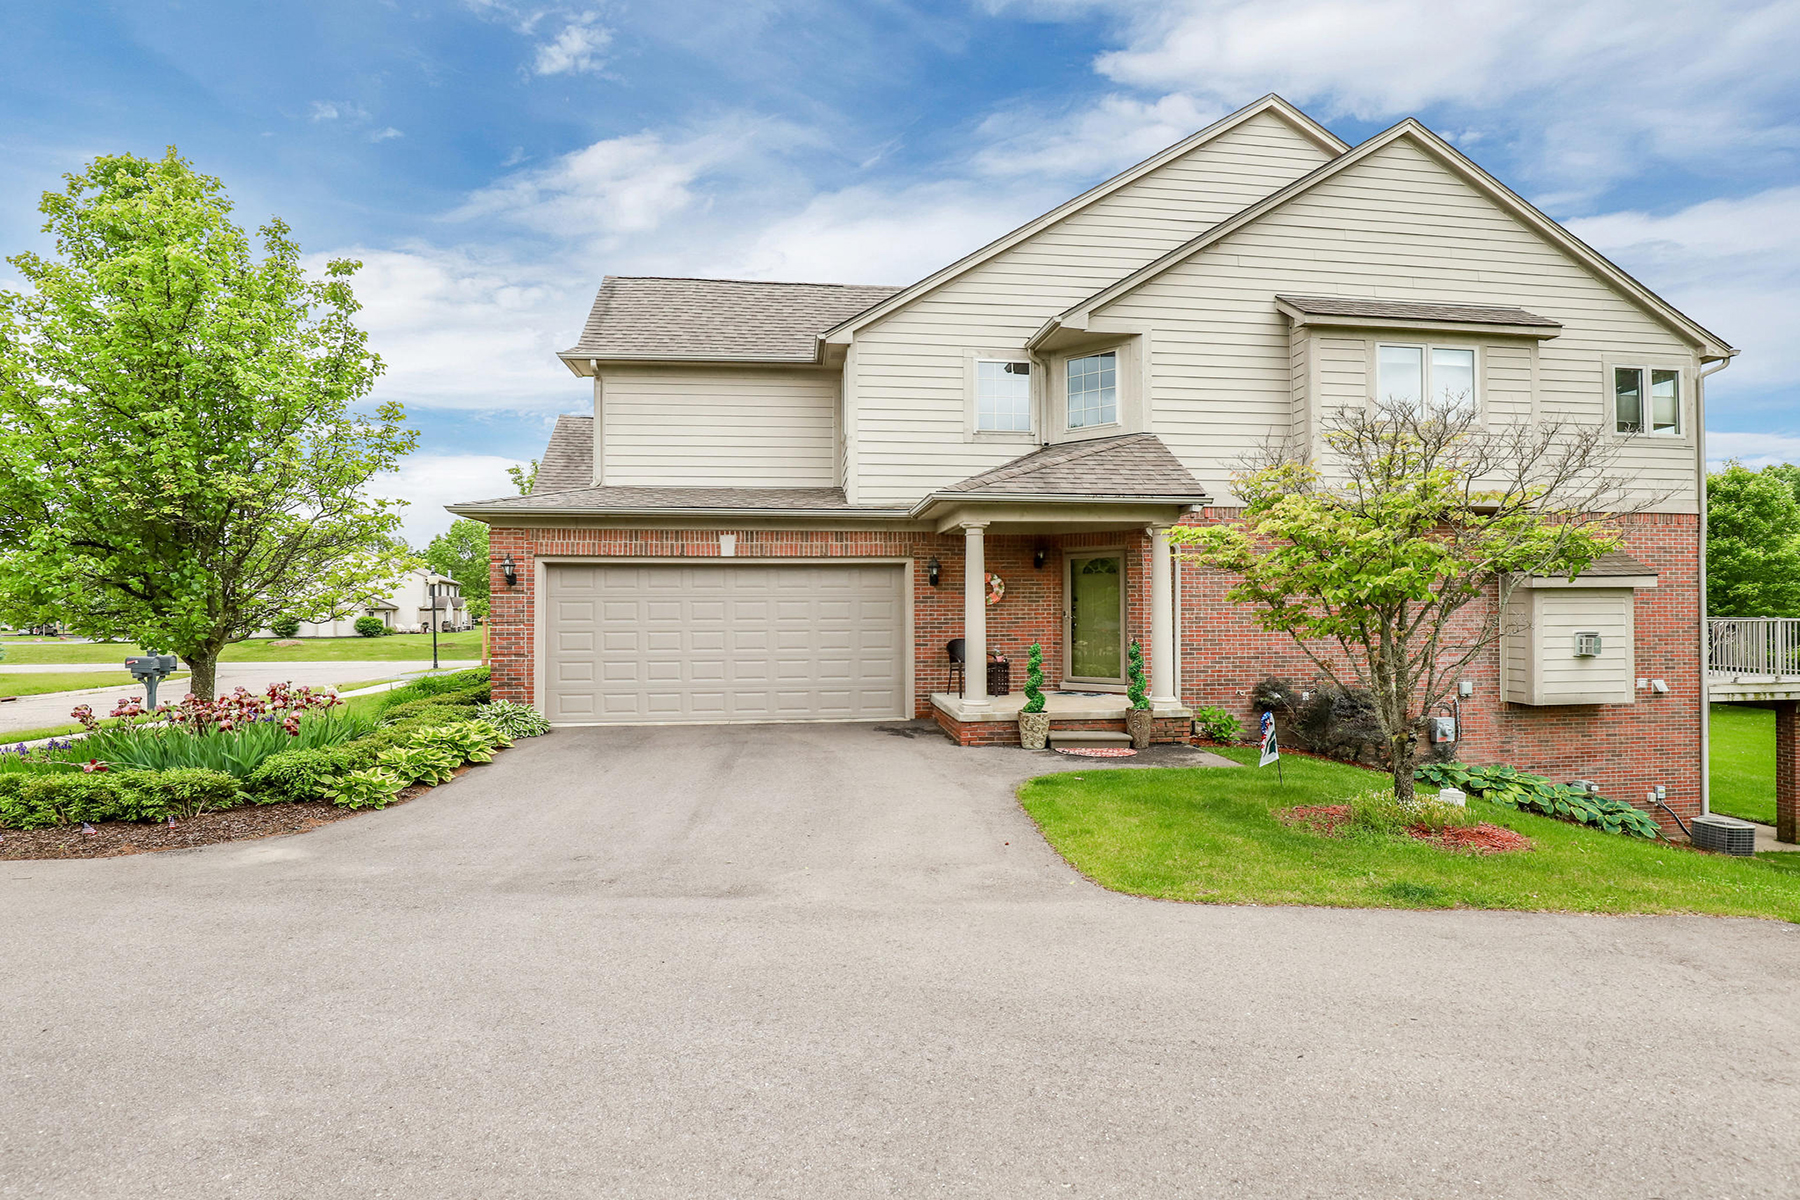 Condominiums for Sale at Highland Township 1194 Alissa Marie Drive Highland Twp, Michigan 48357 United States